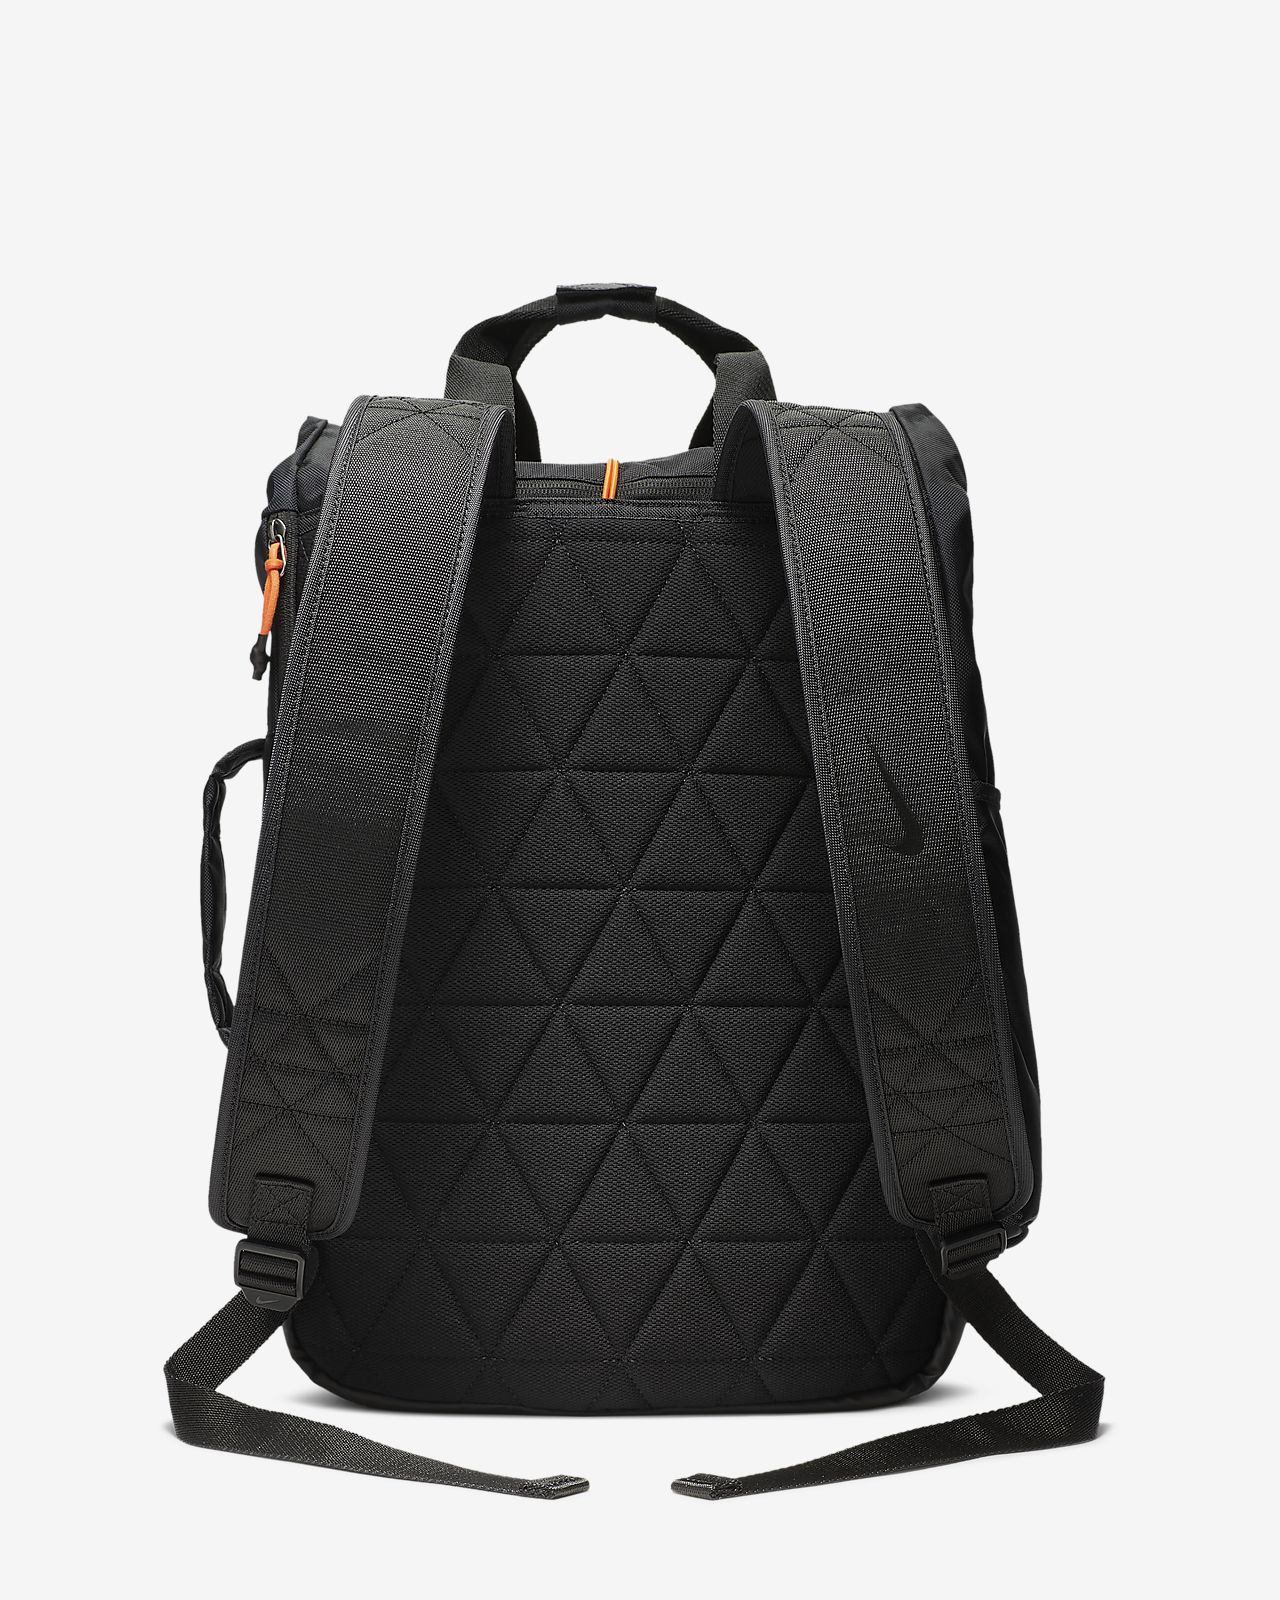 a433eeedd48 Nike Vapor Energy 2.0 Training Backpack. Nike.com